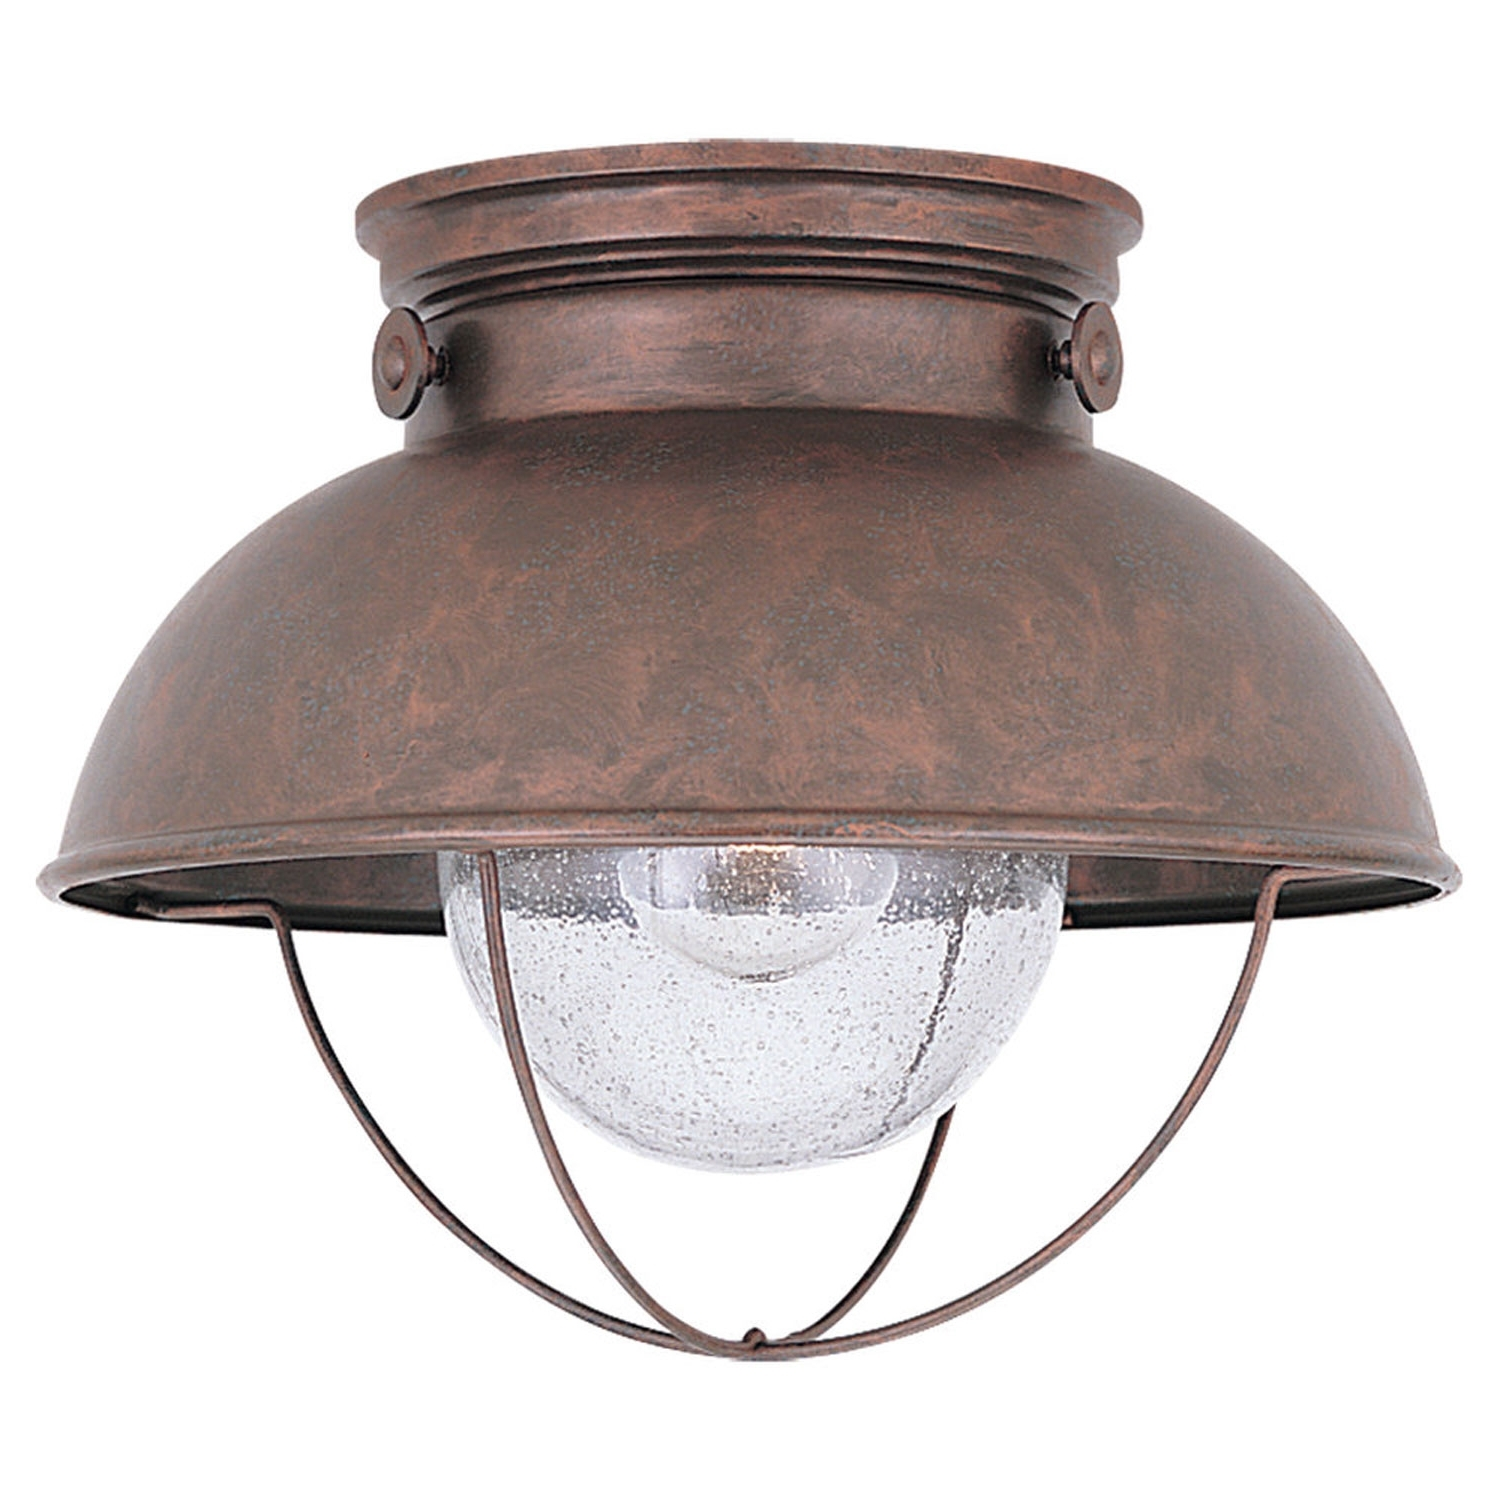 Sea Gull Lighting Sebring Weathered Copper Outdoor Ceiling Light On Sale Regarding Latest Outdoor Ceiling Fans With Copper Lights (View 19 of 20)